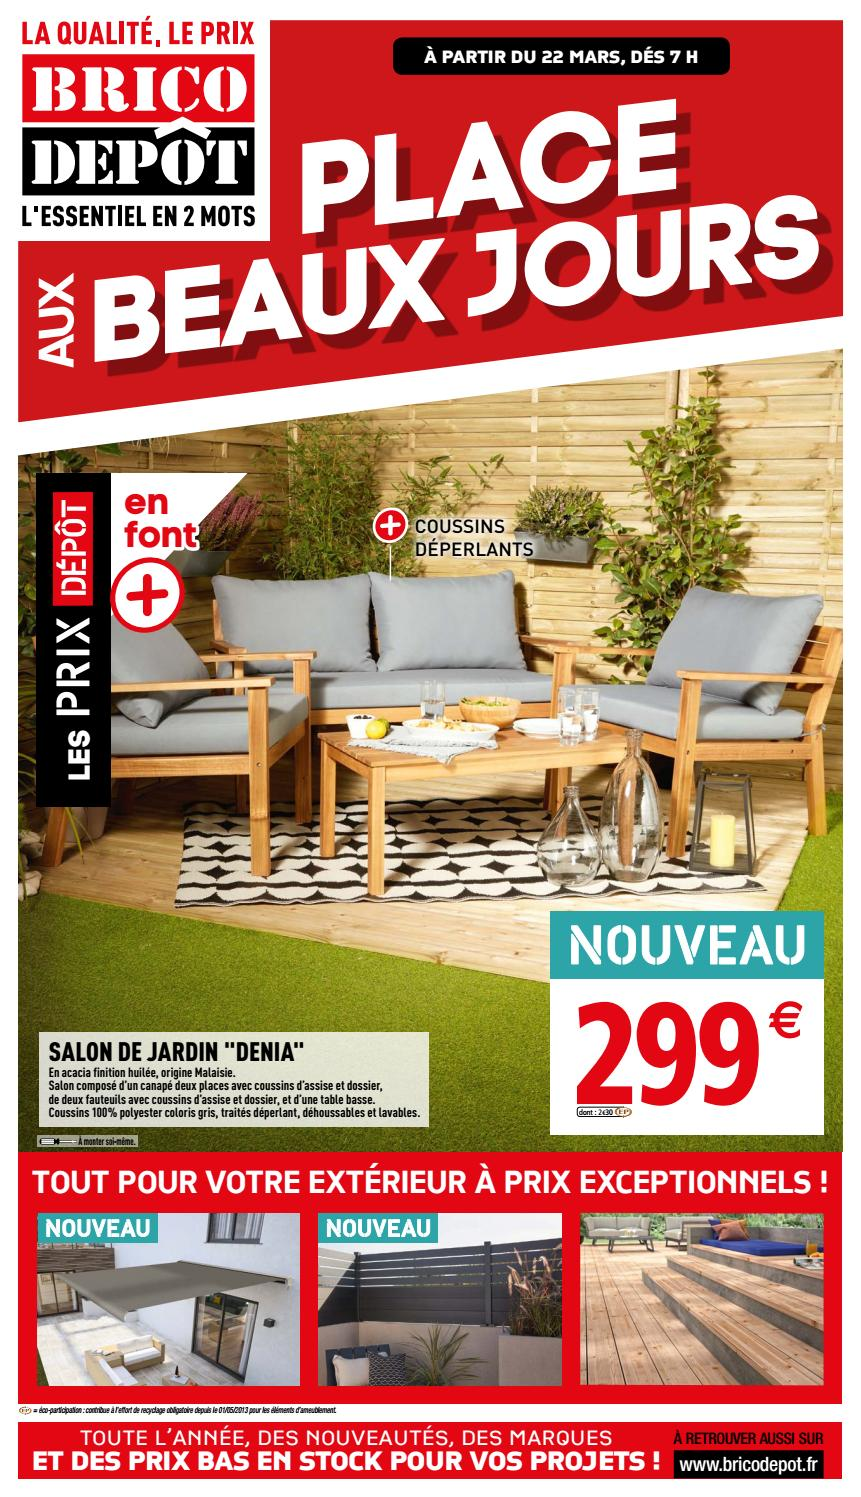 Store Banne Brico Depot Aigues Vives Dep220319 1 By Jan Deo Issuu